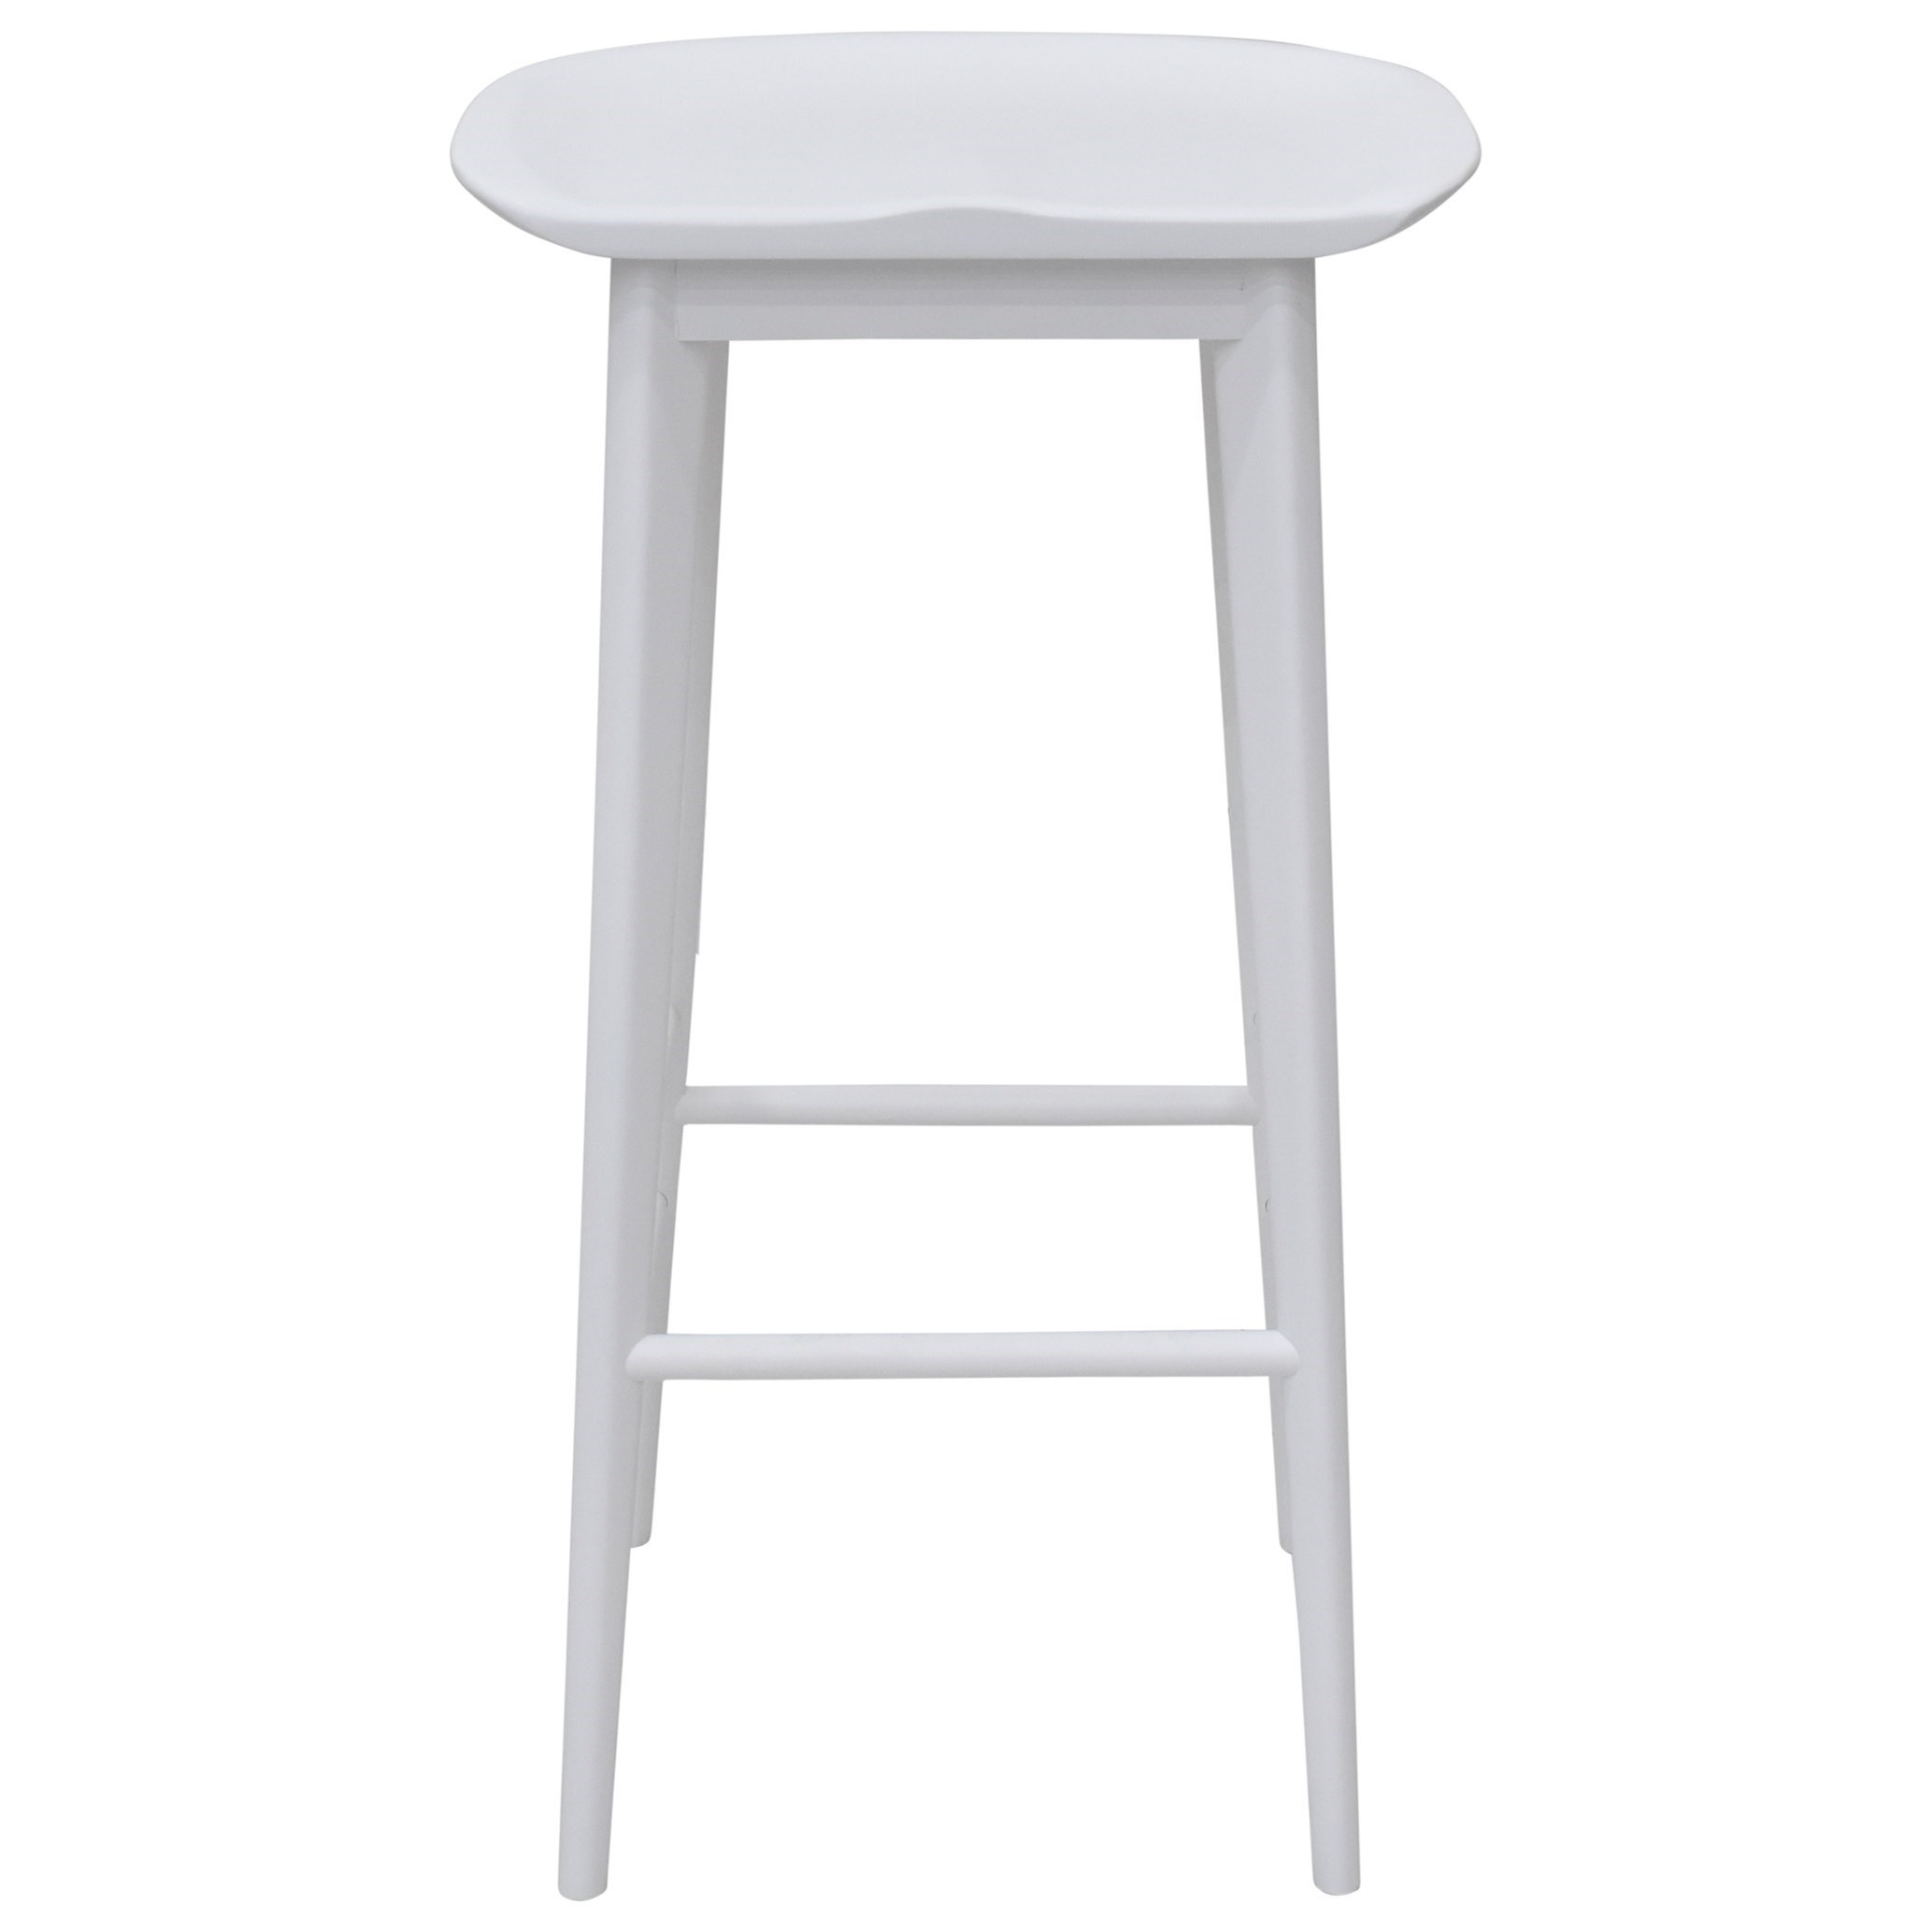 Hilton Counter Height Bar Stool by Steve Silver at Northeast Factory Direct